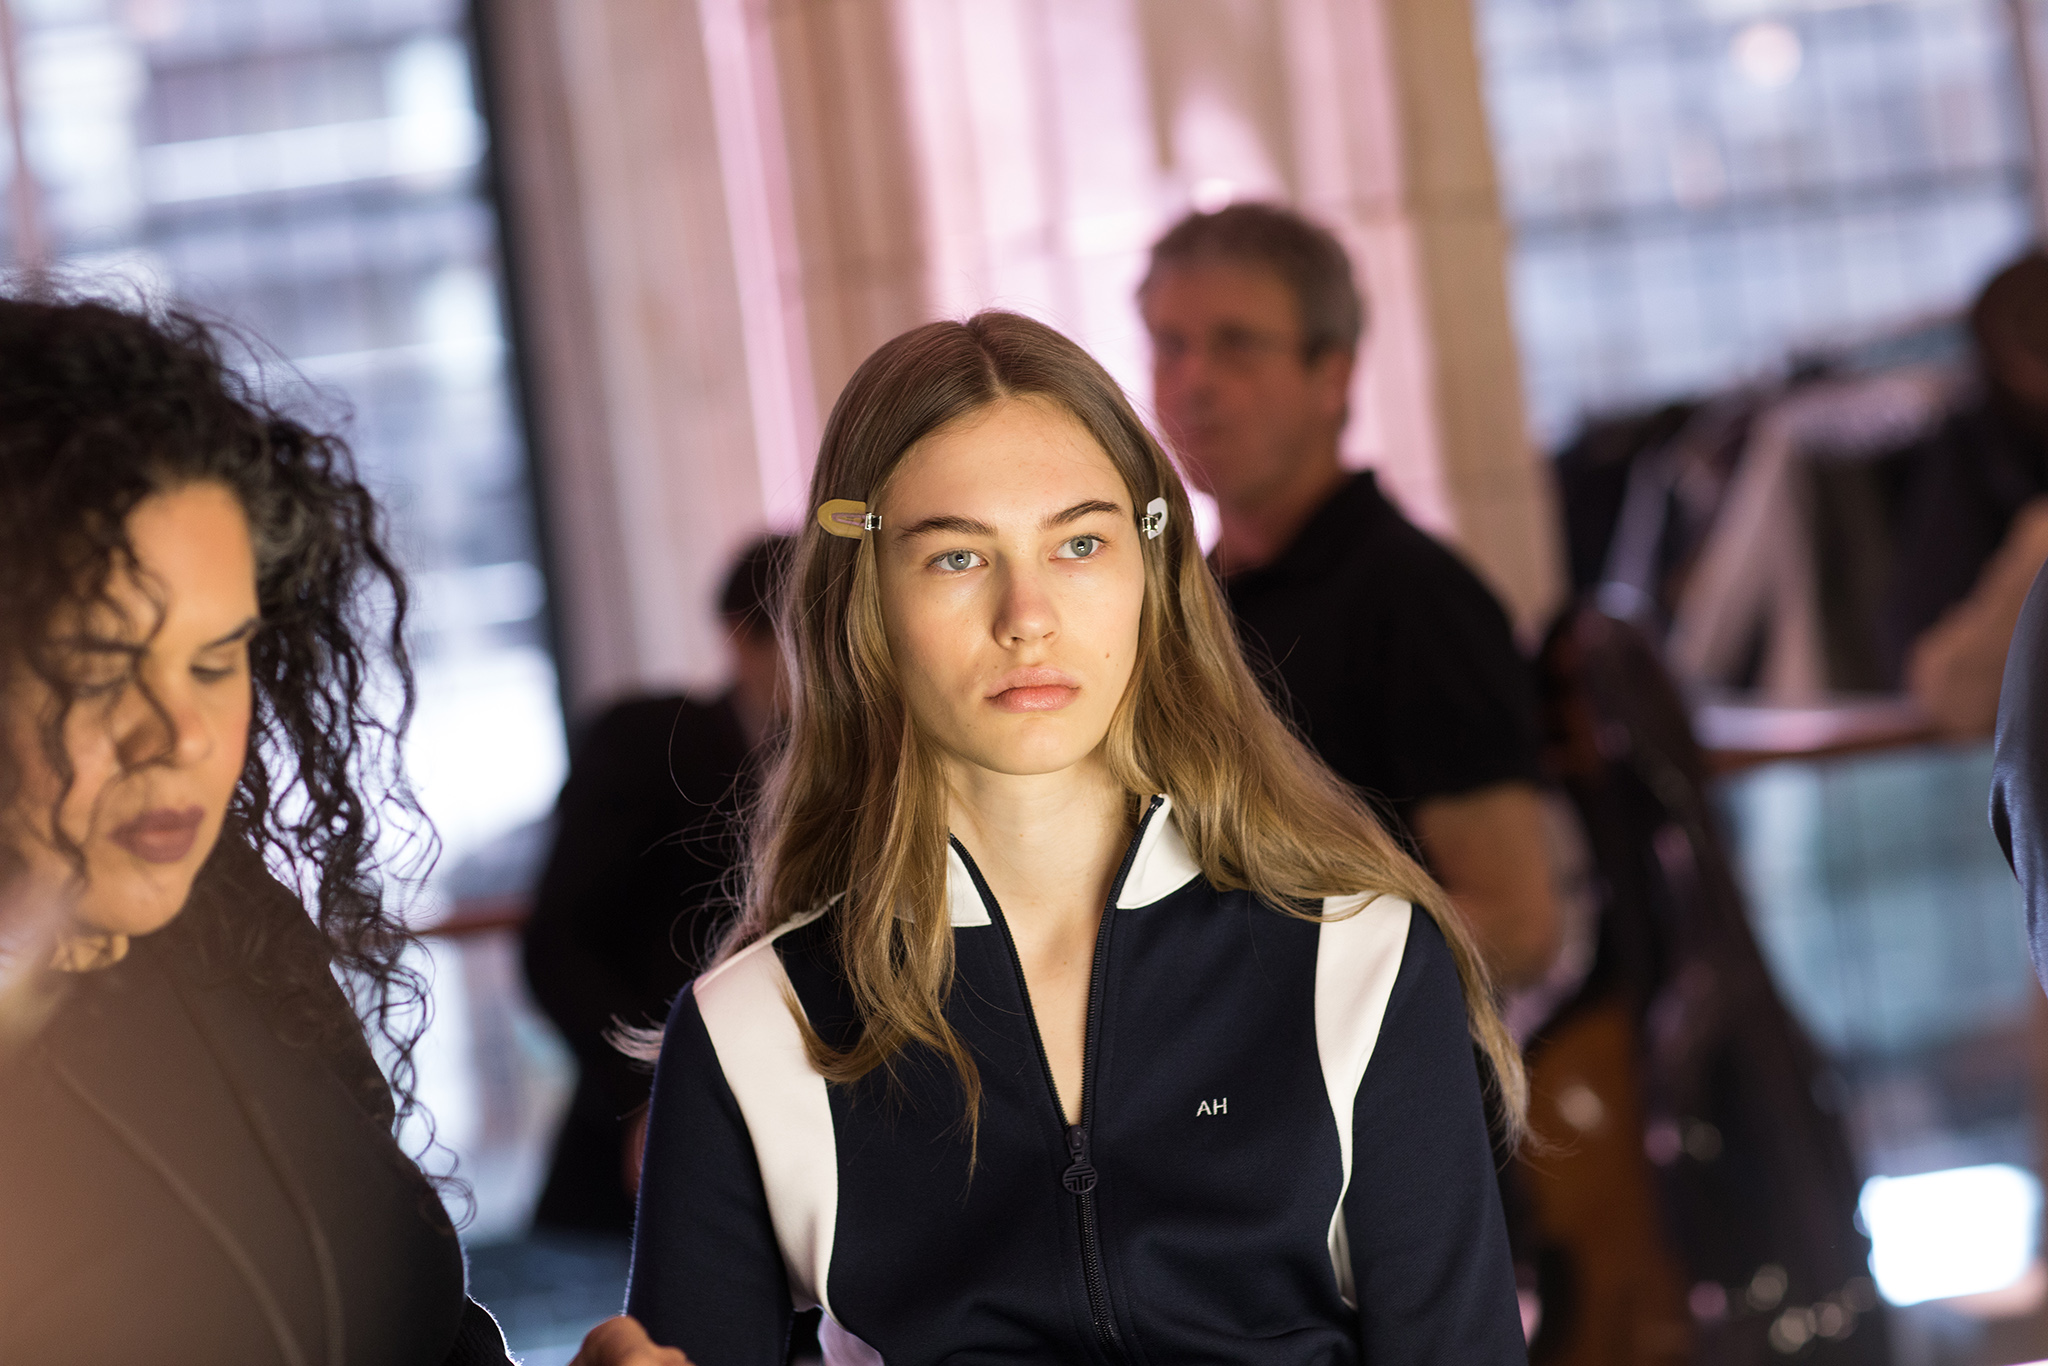 Backstage at Tory Burch RTW Fall 2018